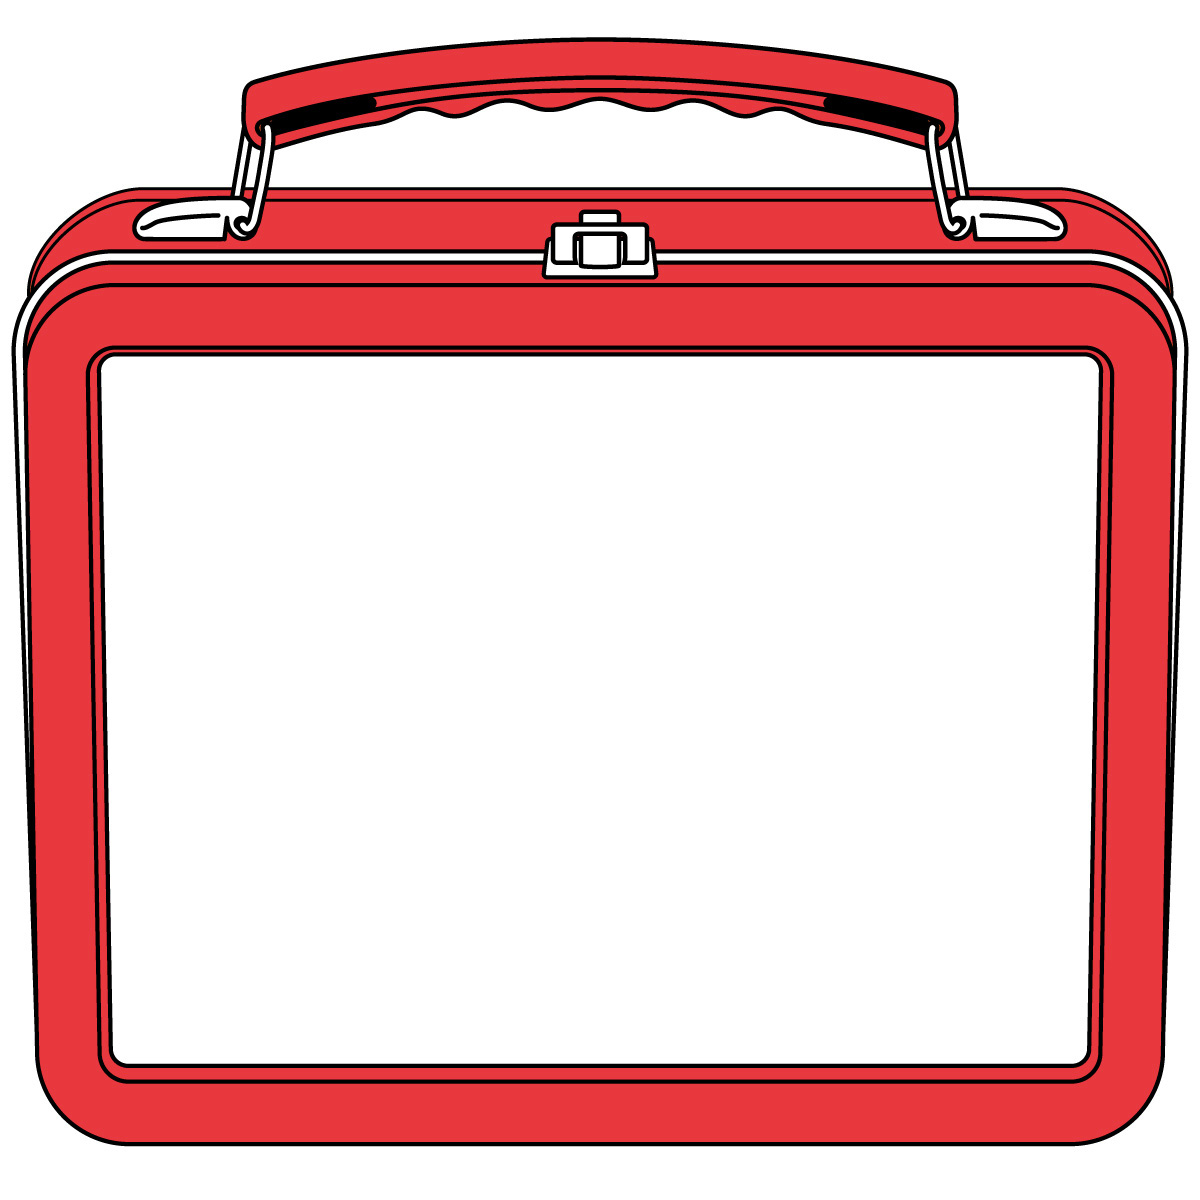 Bag clipart rectangle Healthy Clipart Images Clipart Snack